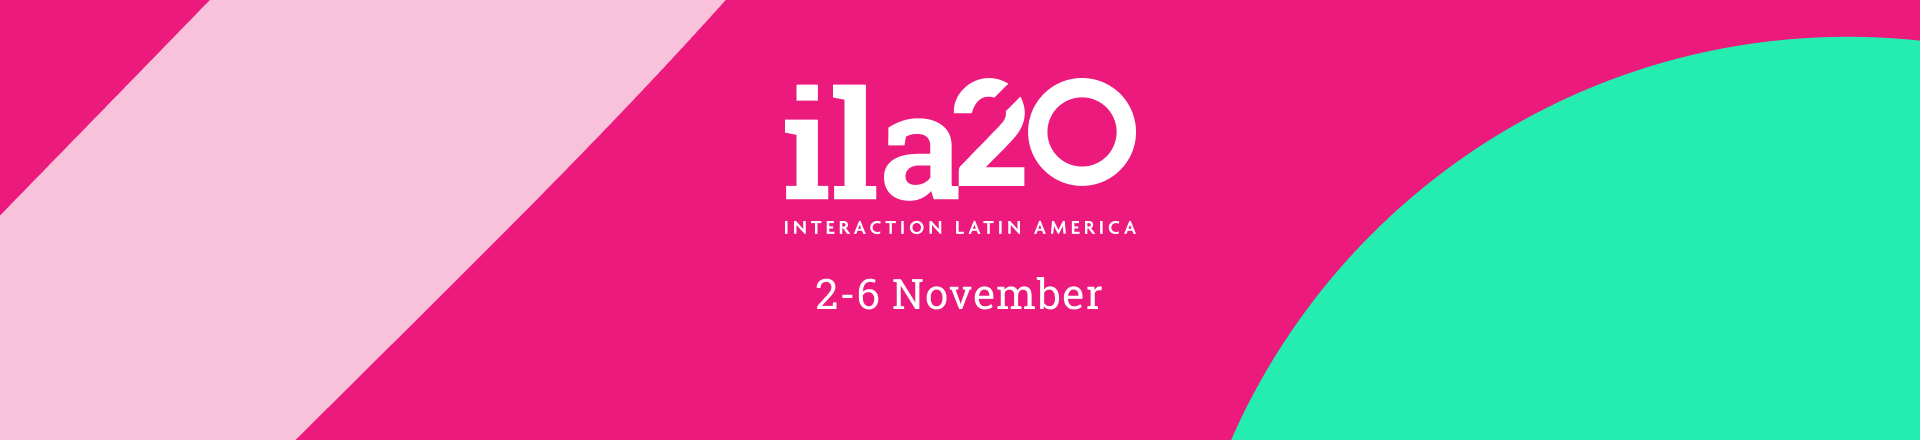 Interaction Latin America 2020